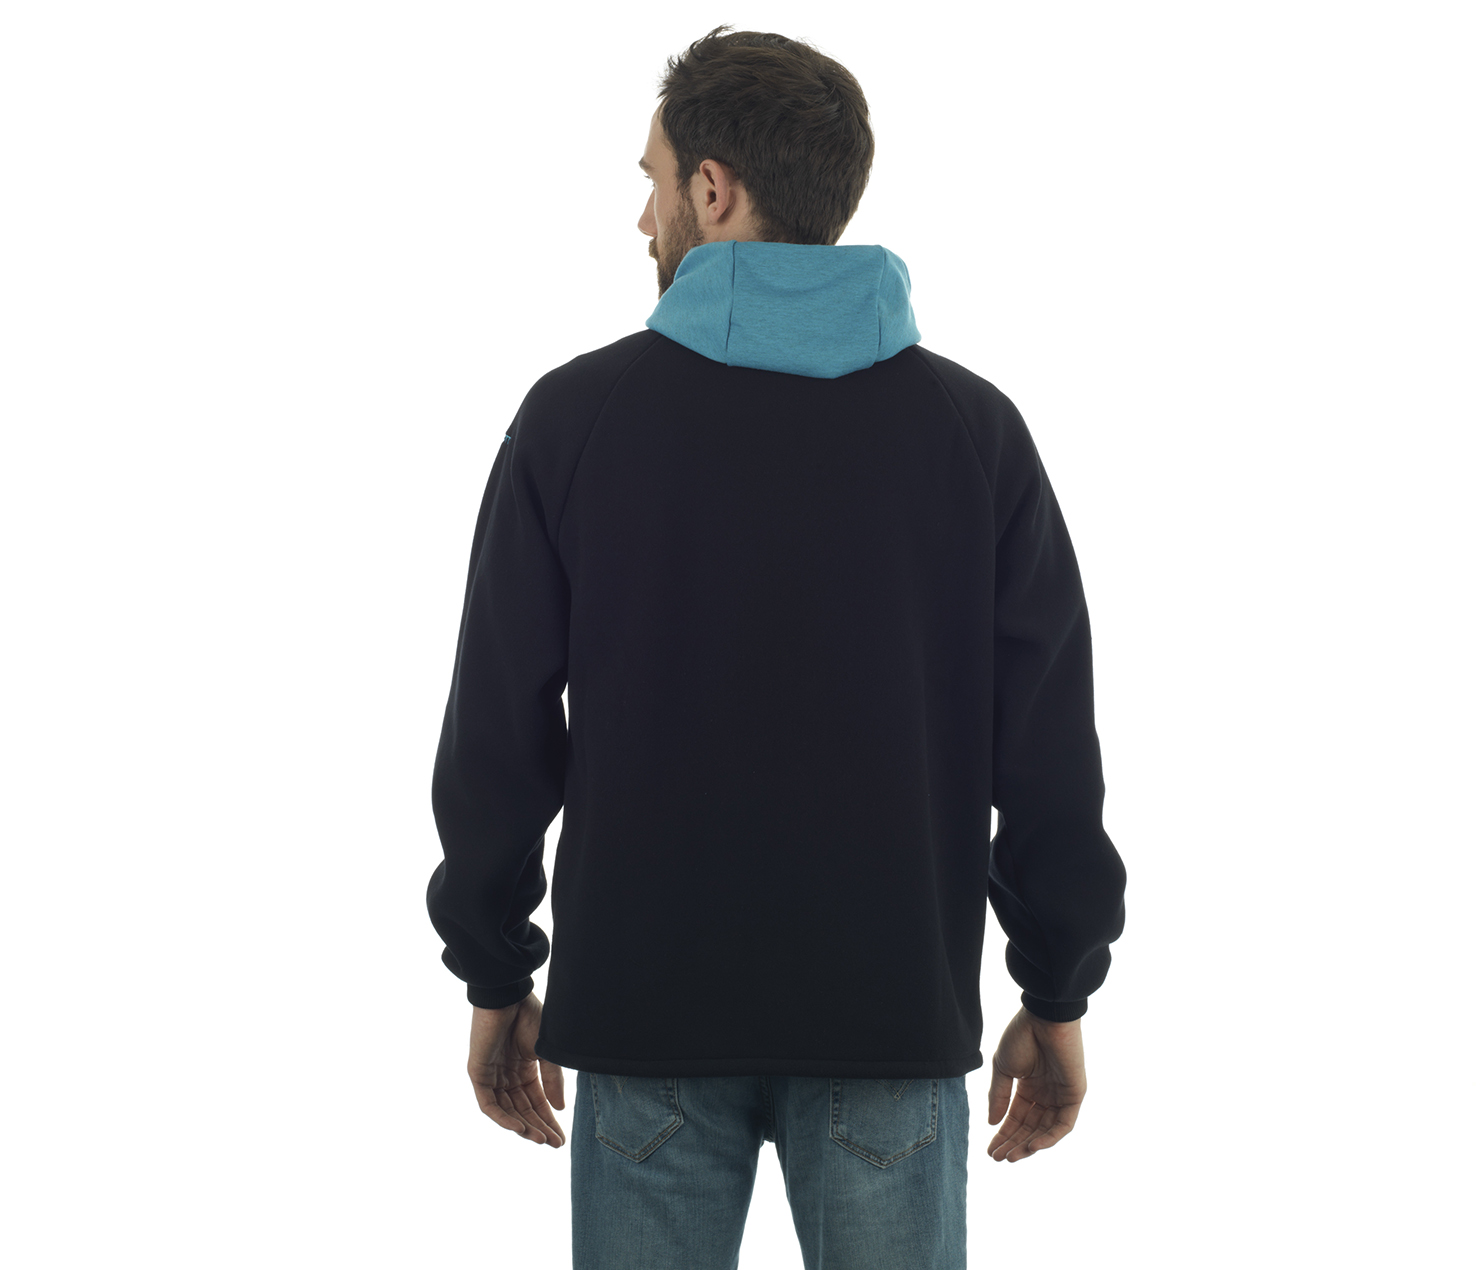 DARWIN FLEECE JACKET